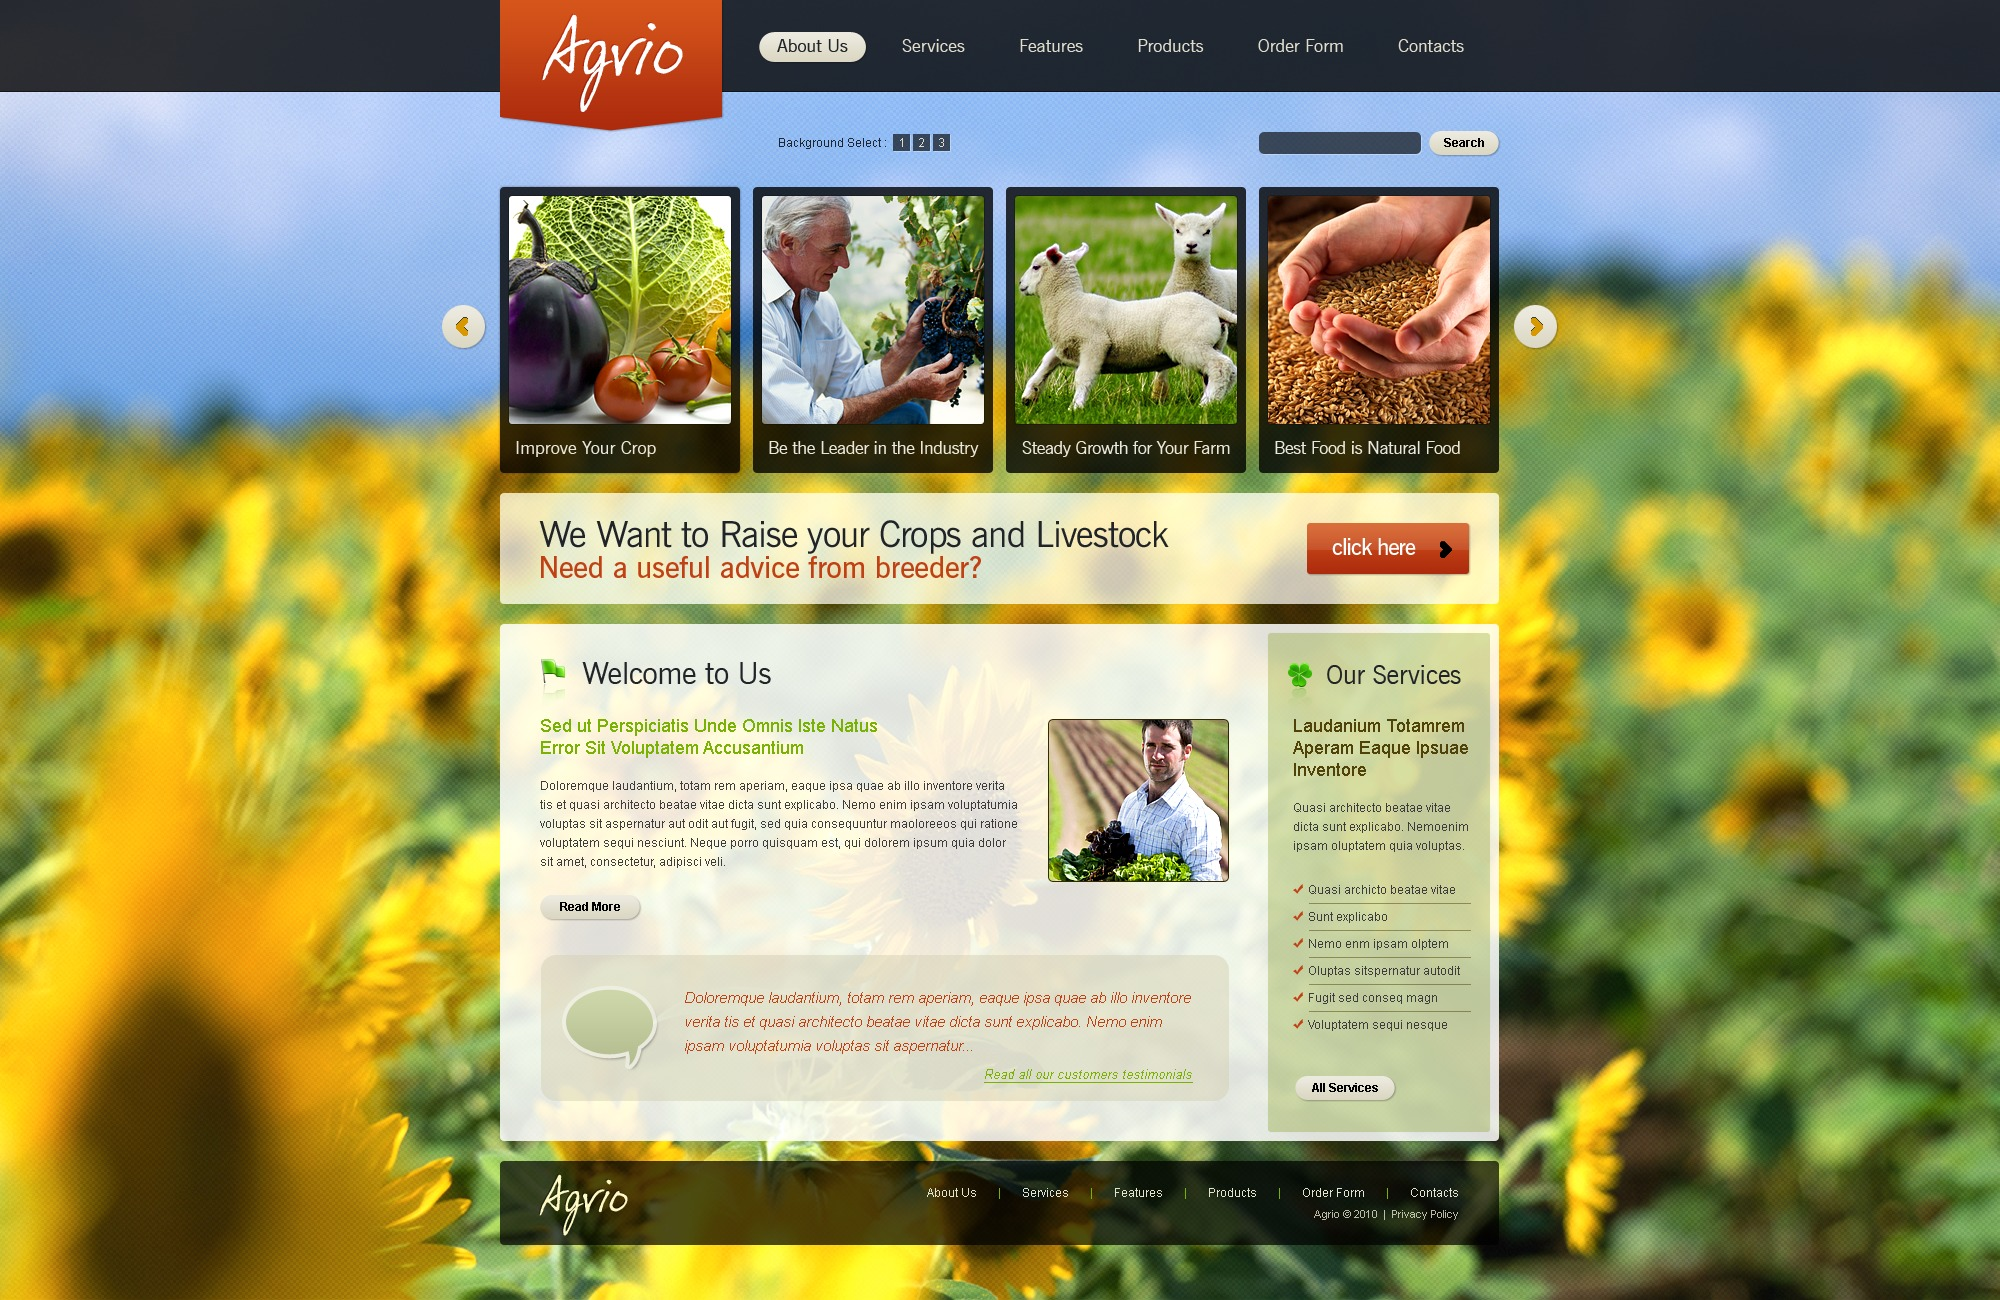 The Agrio Agriculture Company PSD Design 54098, one of the best PSD templates of its kind (agriculture, wide, jquery), also known as agrio agriculture company PSD template, business PSD template, grain-crops PSD template, cereals PSD template, field PSD template, combine PSD template, harvest PSD template, farming PSD template, plants PSD template, services PSD template, products solutions PSD template, market PSD template, delivery PSD template, resource PSD template, grassland PSD template, equipment PSD template, nitrates PSD template, fertilizer PSD template, clients PSD template, partners PSD template, innovations PSD template, support PSD template, information dealer PSD template, stocks PSD template, team and related with agrio agriculture company, business, grain-crops, cereals, field, combine, harvest, farming, plants, services, products solutions, market, delivery, resource, grassland, equipment, nitrates, fertilizer, clients, partners, innovations, support, information dealer, stocks, team, etc.